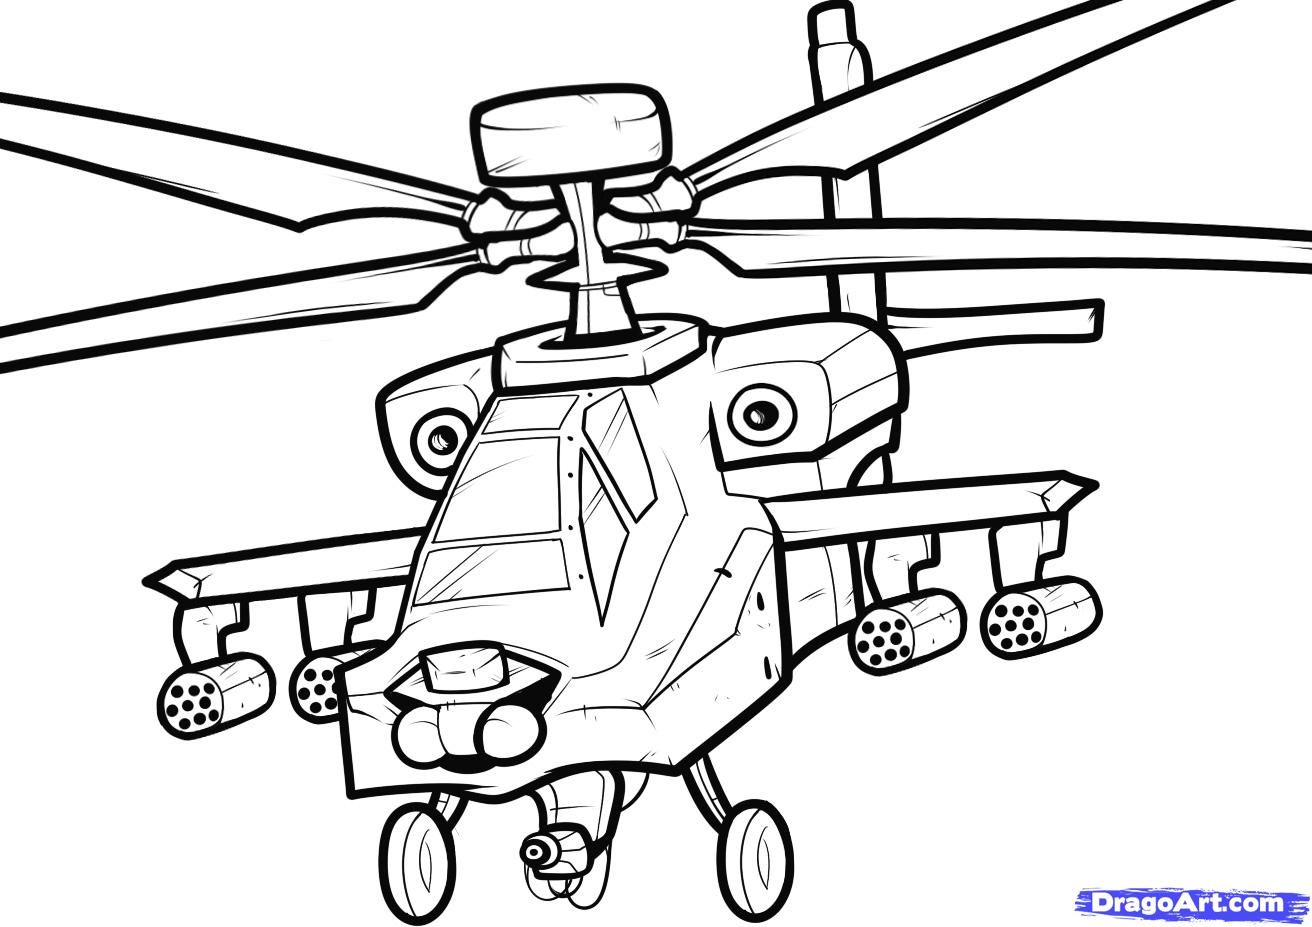 Coloring pages army - Coloring Pages Army Tanks Coloring Home